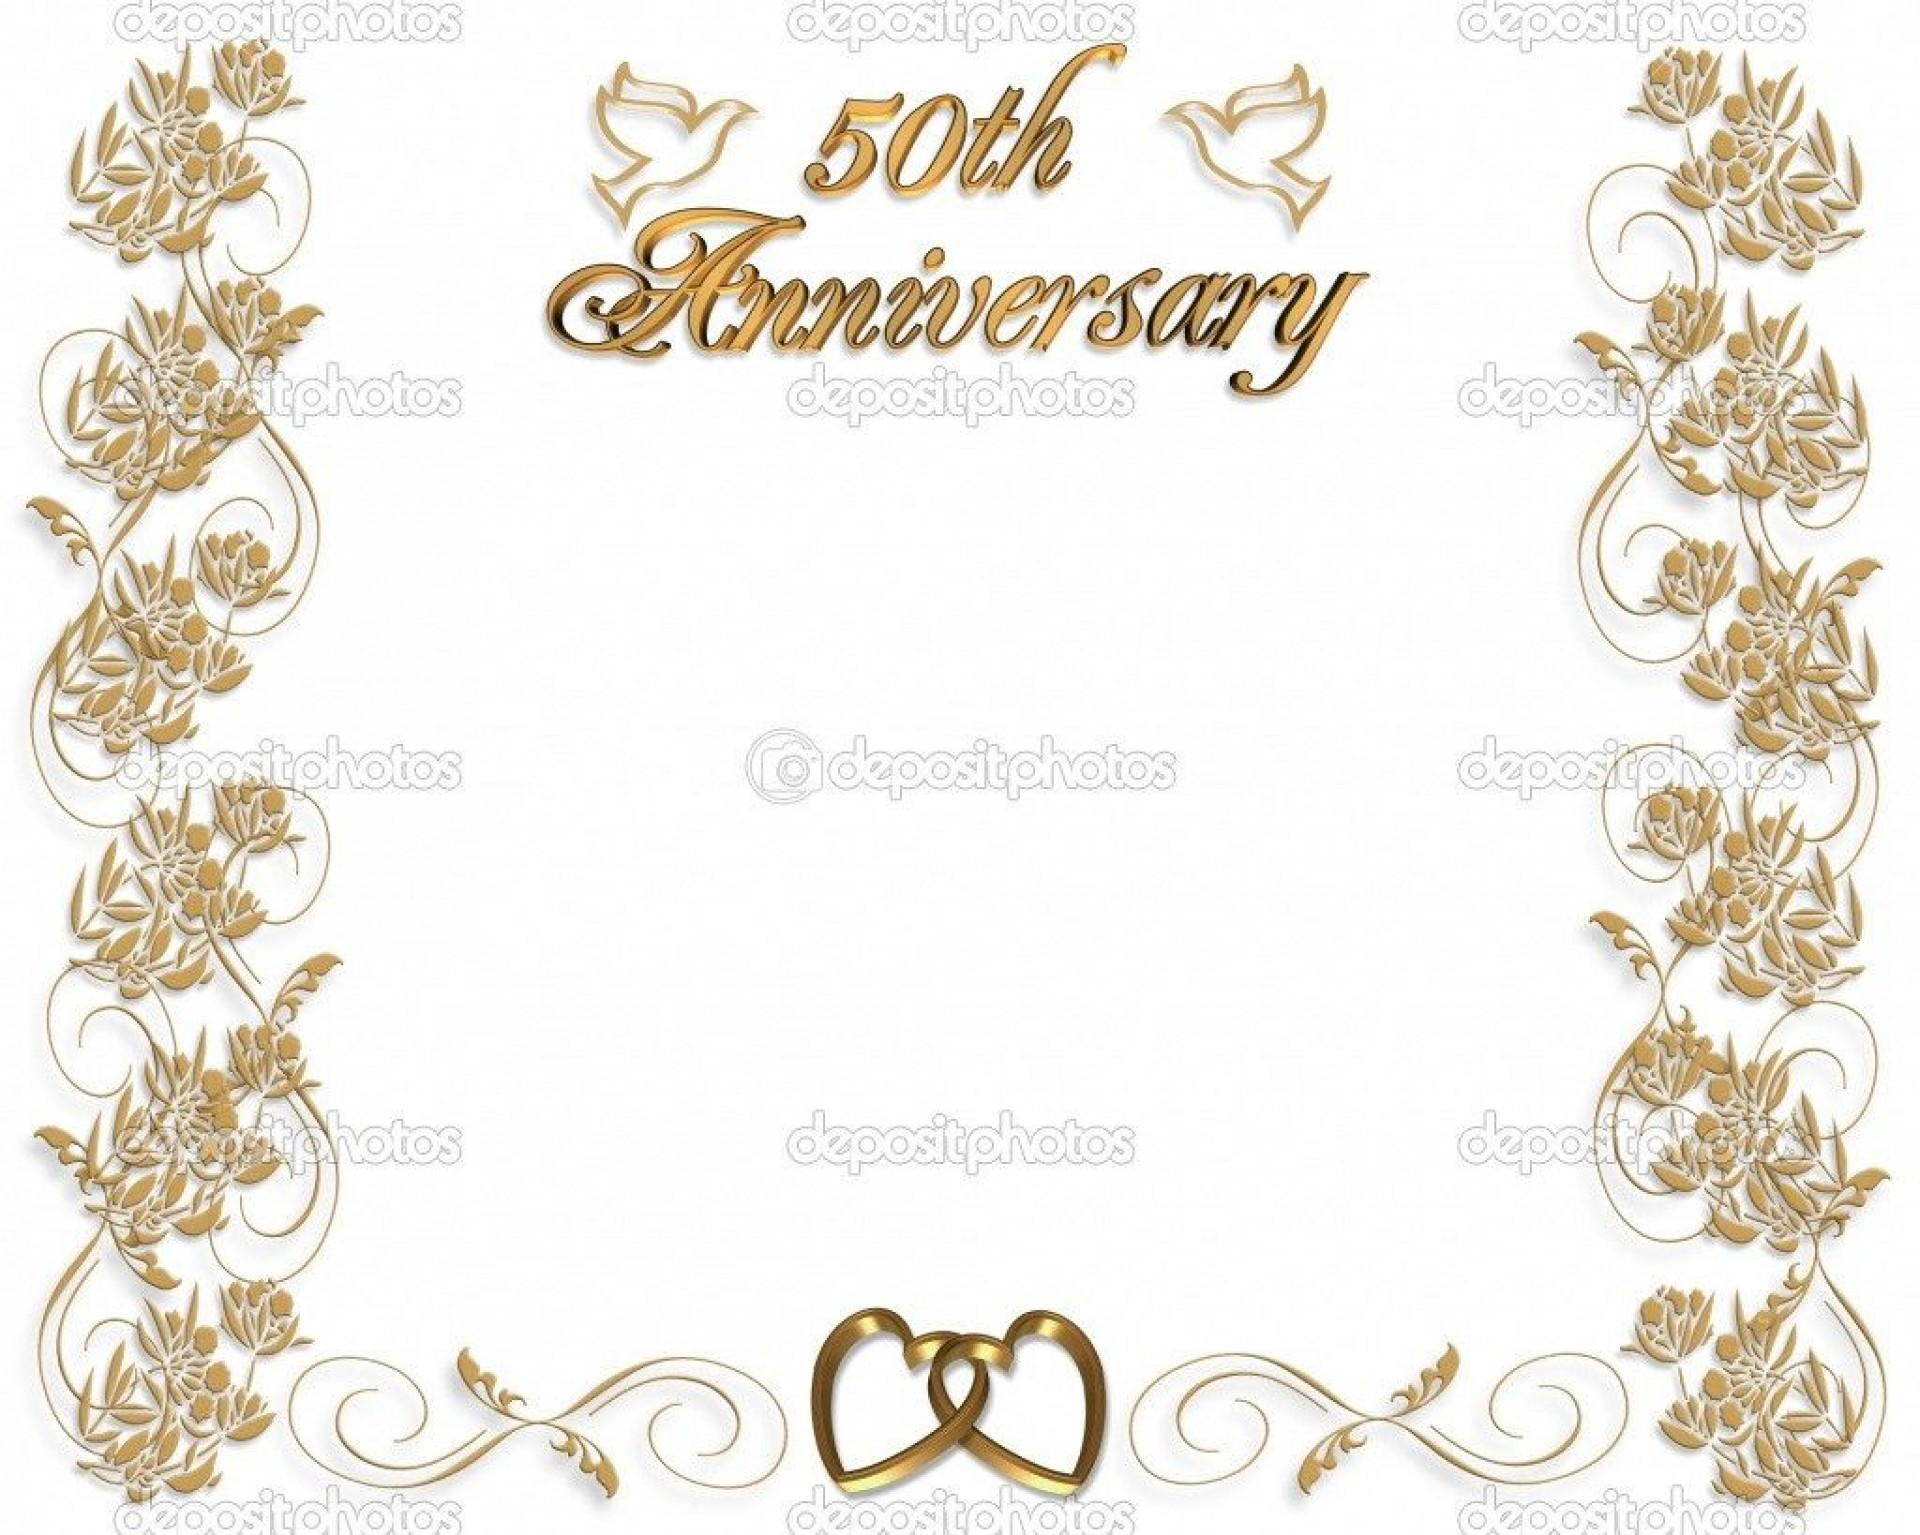 005 Fearsome 50th Anniversary Invitation Template Free Sample  Download Golden Wedding1920